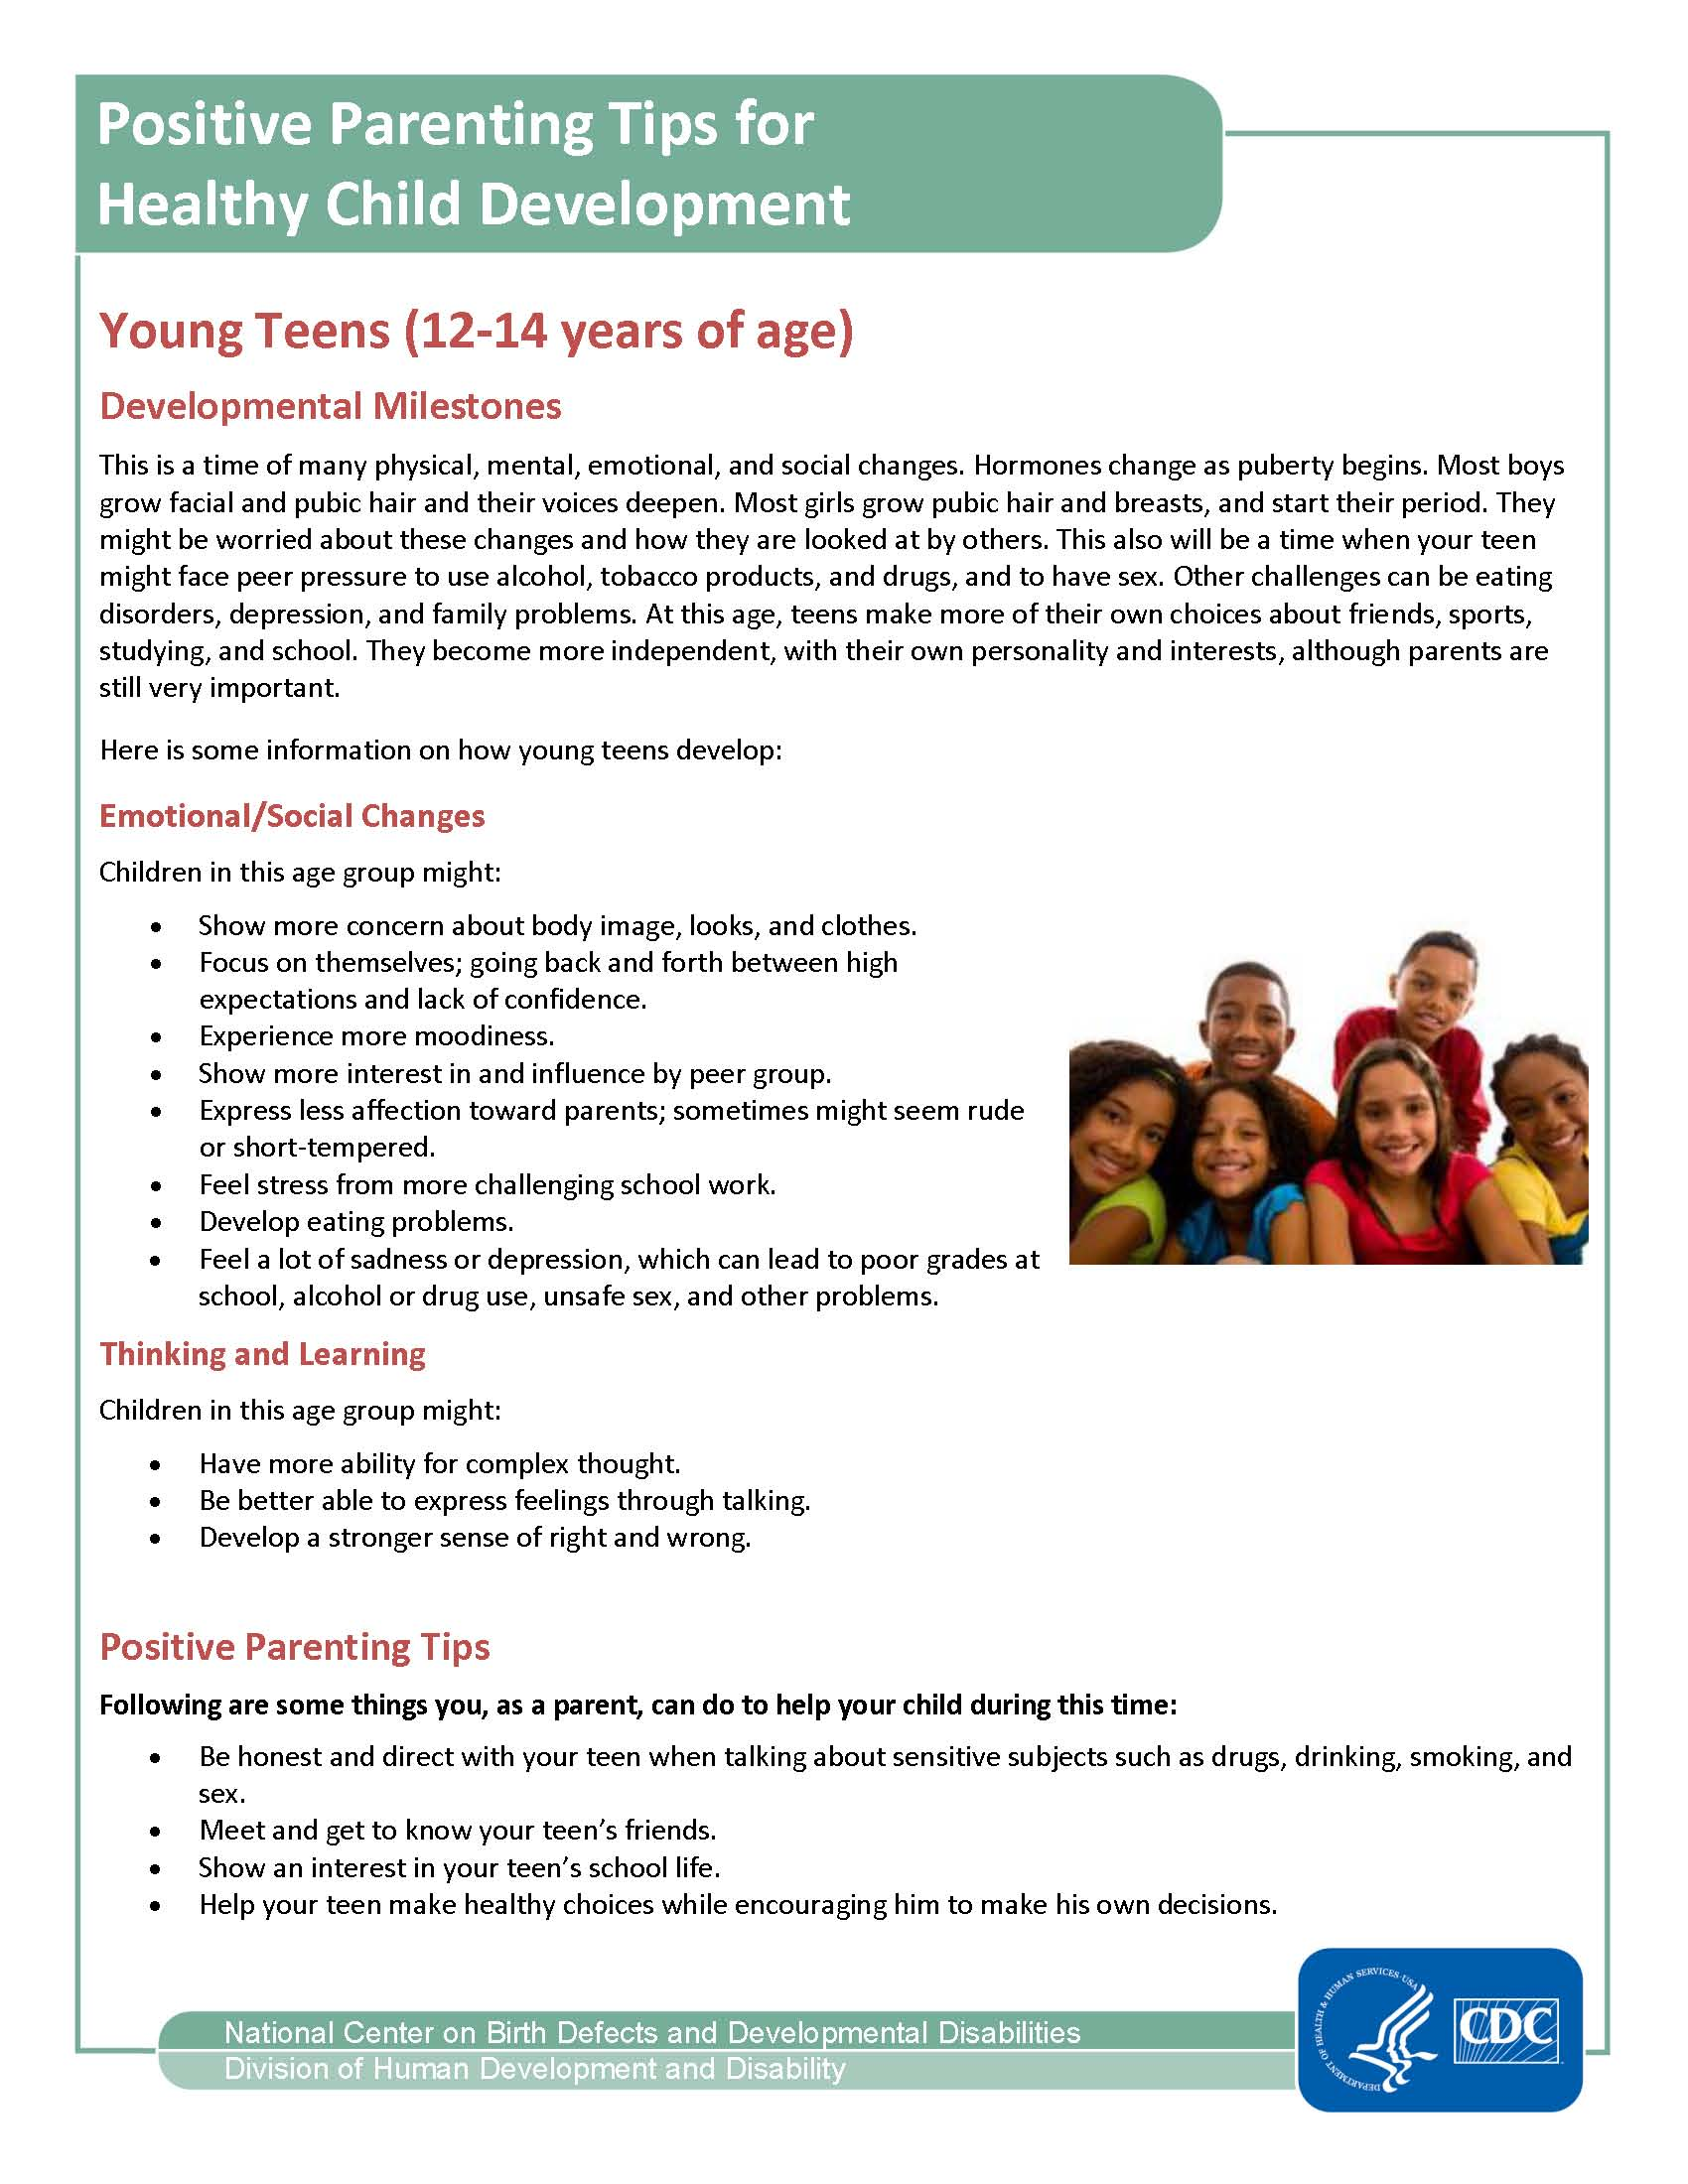 Website Positive Parenting Tips For Young Teens 12 14 Page